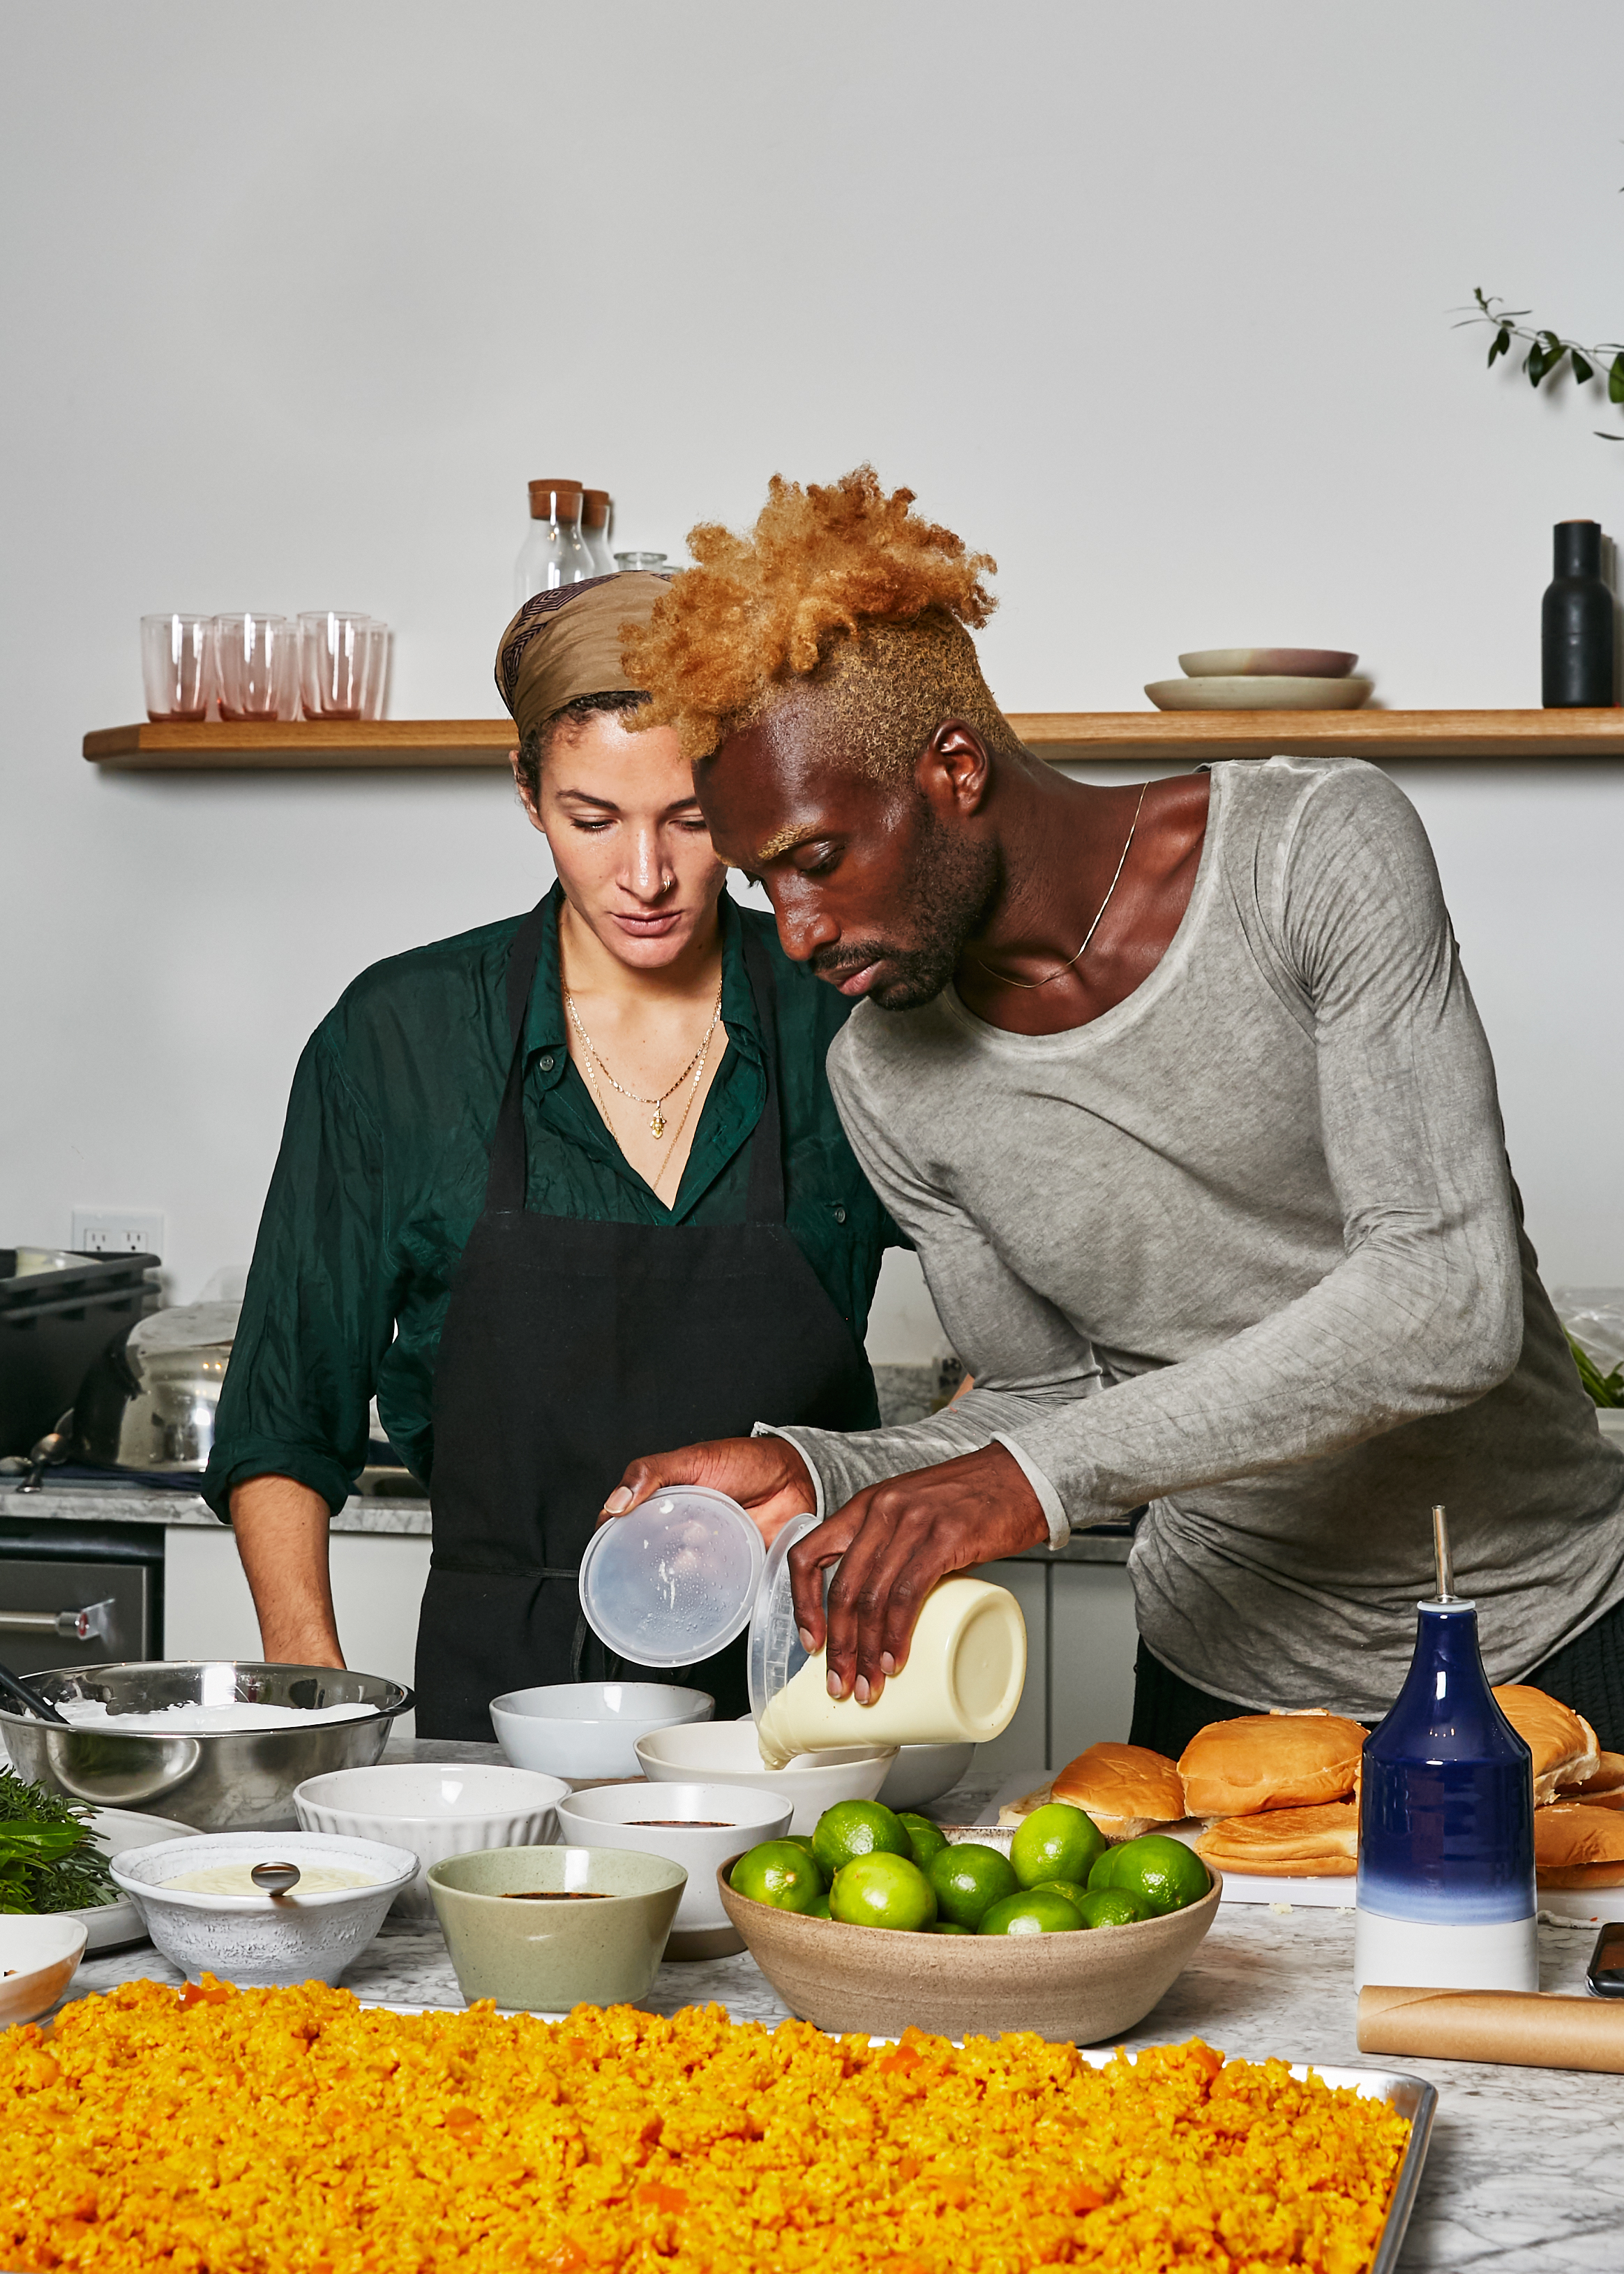 Bon Appétit: Healthyish - DeVonn Francis is Changing the Way We Go Out to Eat